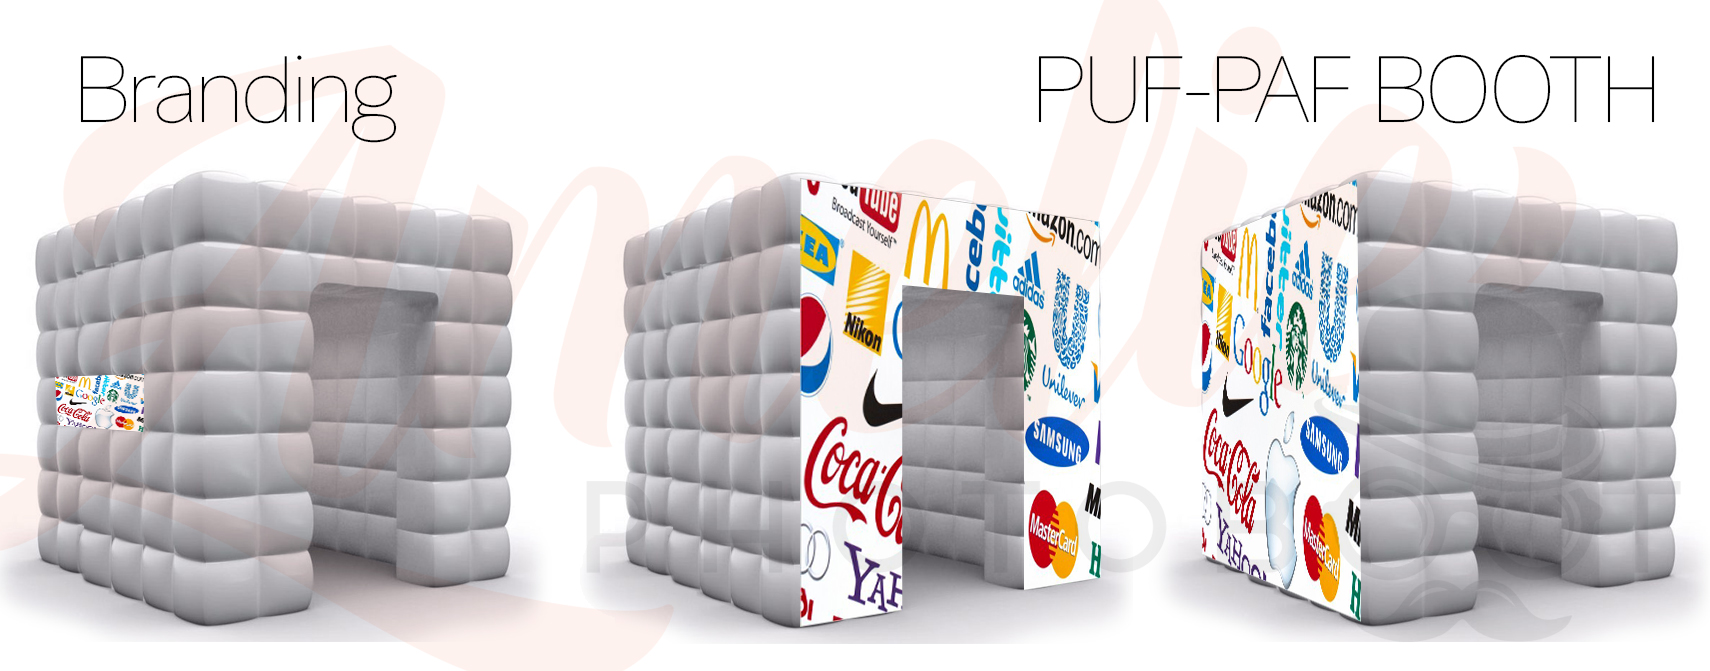 Branding-PUF-PAF-BOOTH